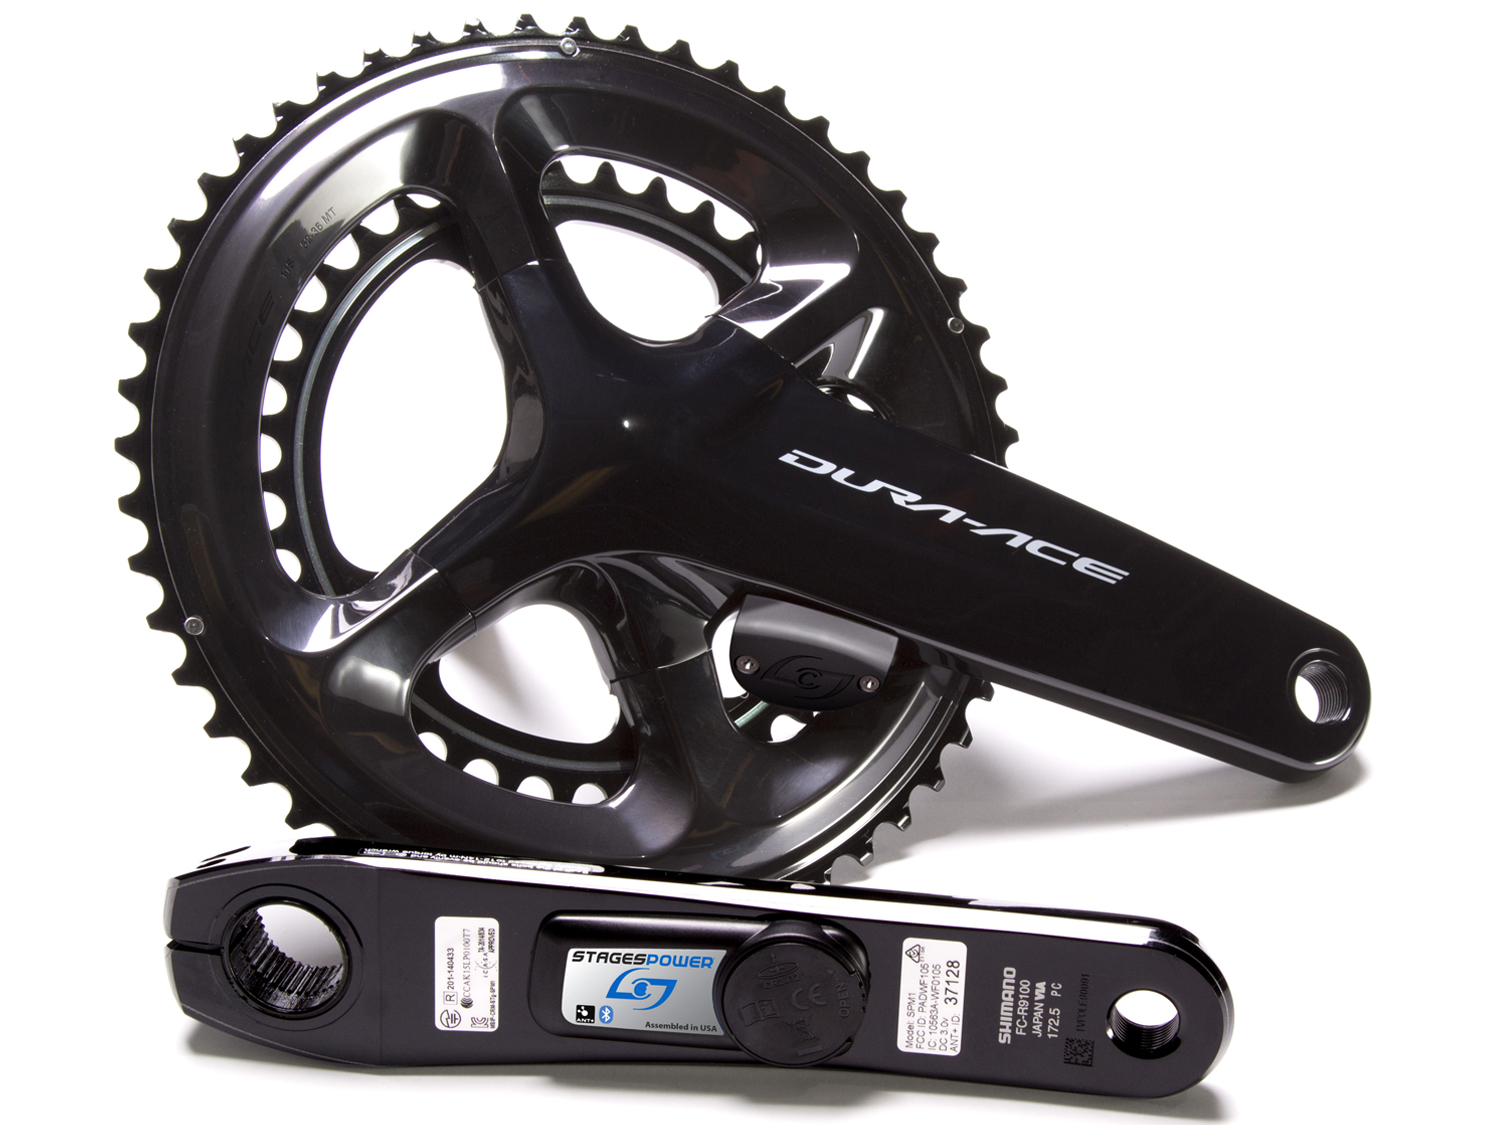 Stages Power L R Shimano Dura-Ace 9100 295fe0967c